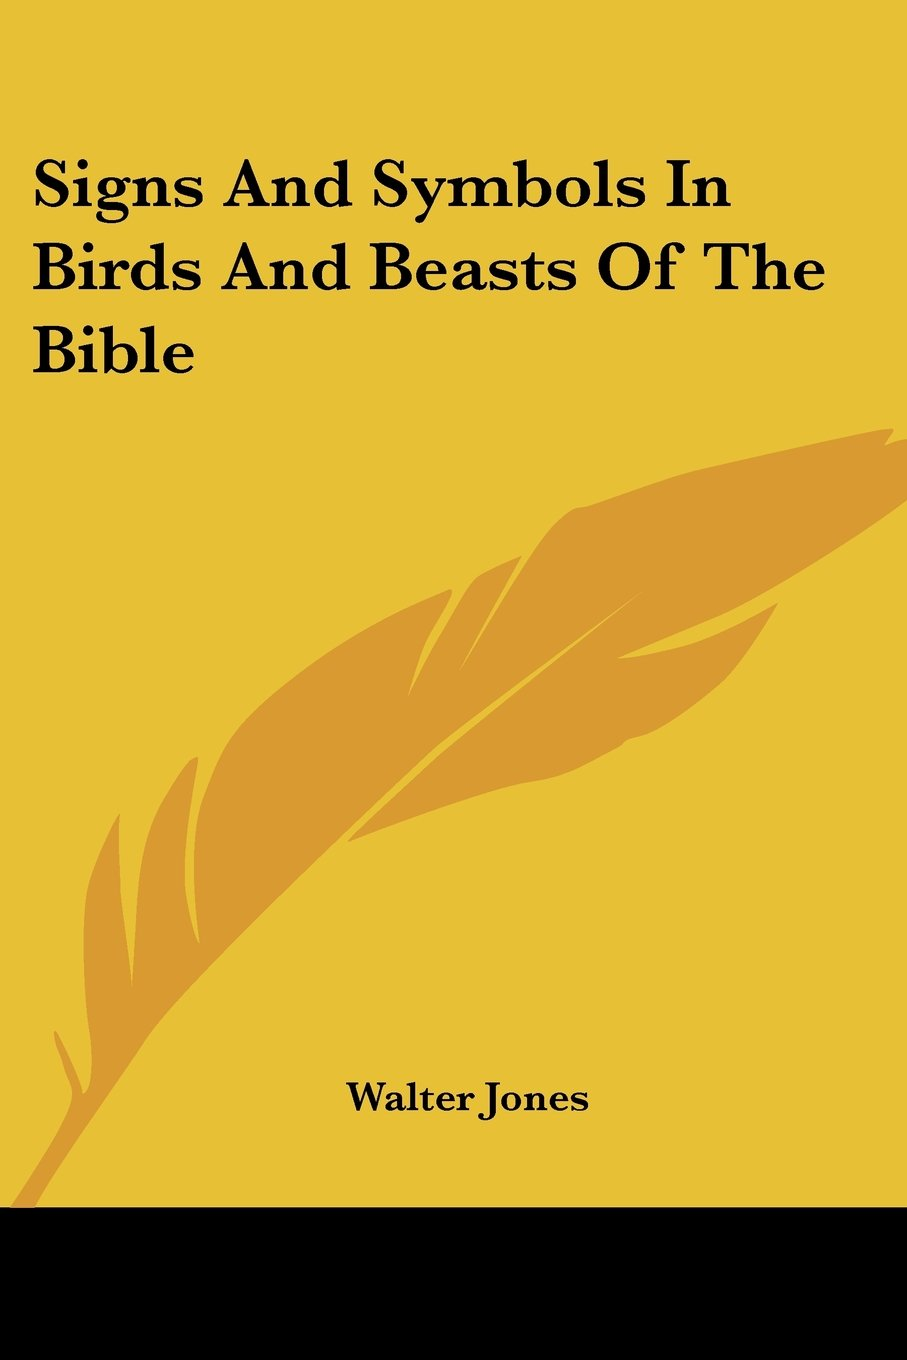 Signs And Symbols In Birds And Beasts Of The Bible Walter Jones